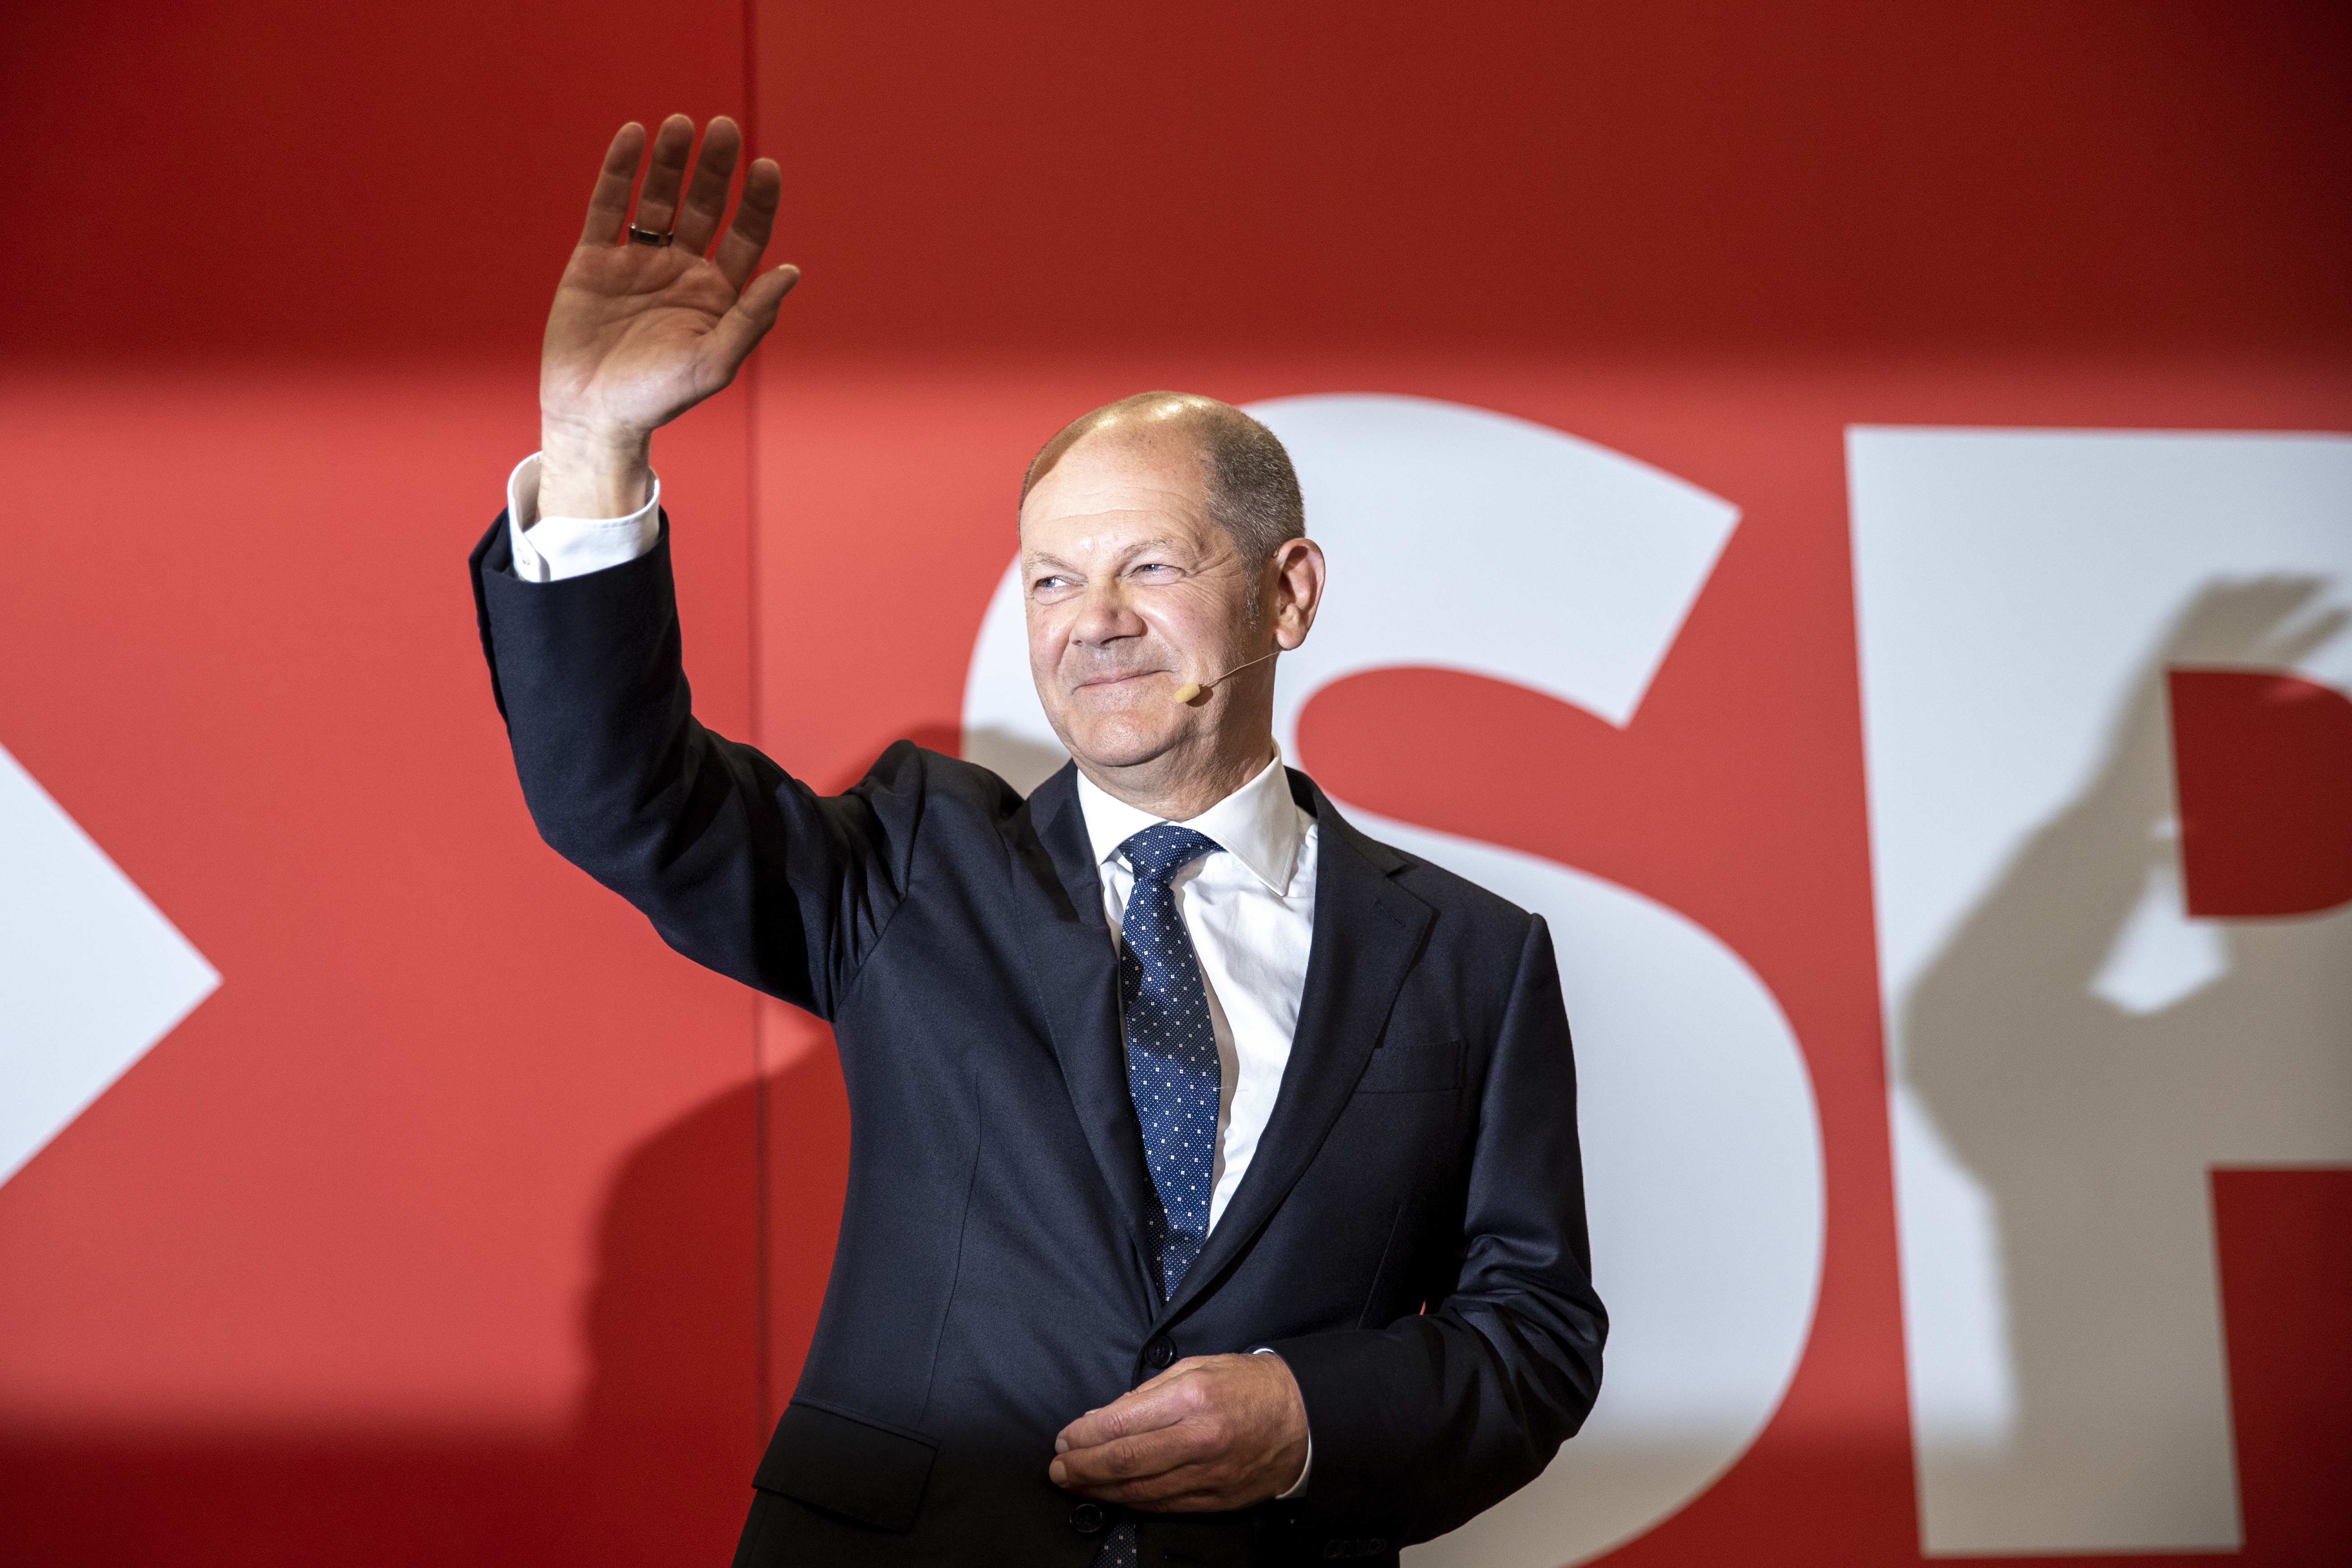 Social Democrats (SPD) React To Election Results